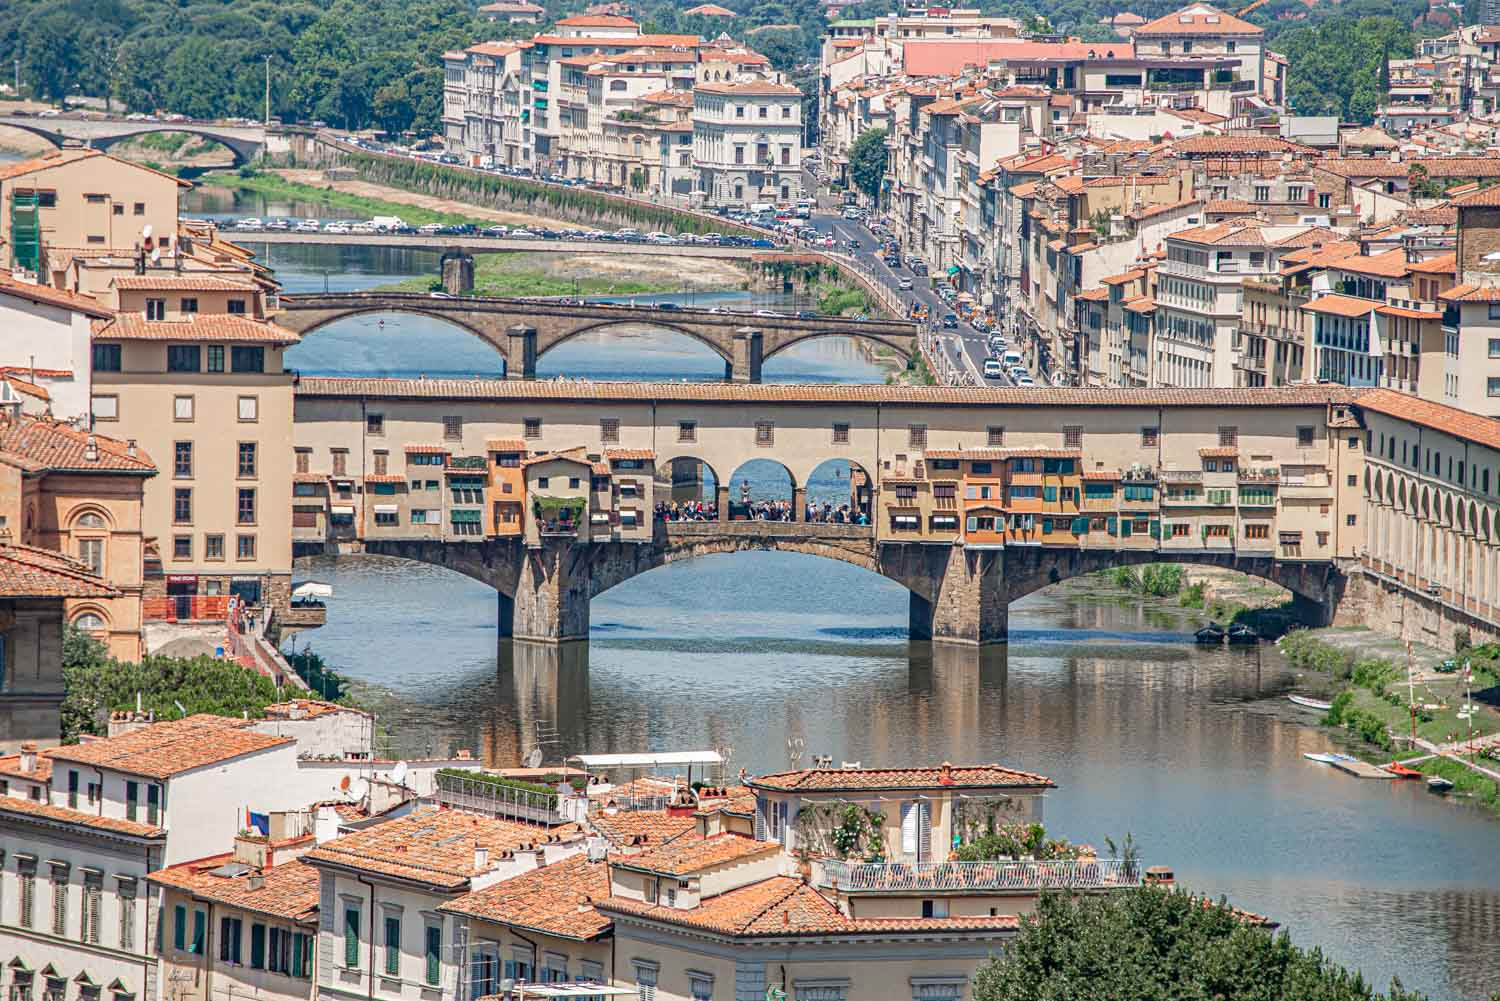 Where to stay in Florence - Cheap Airbnbs